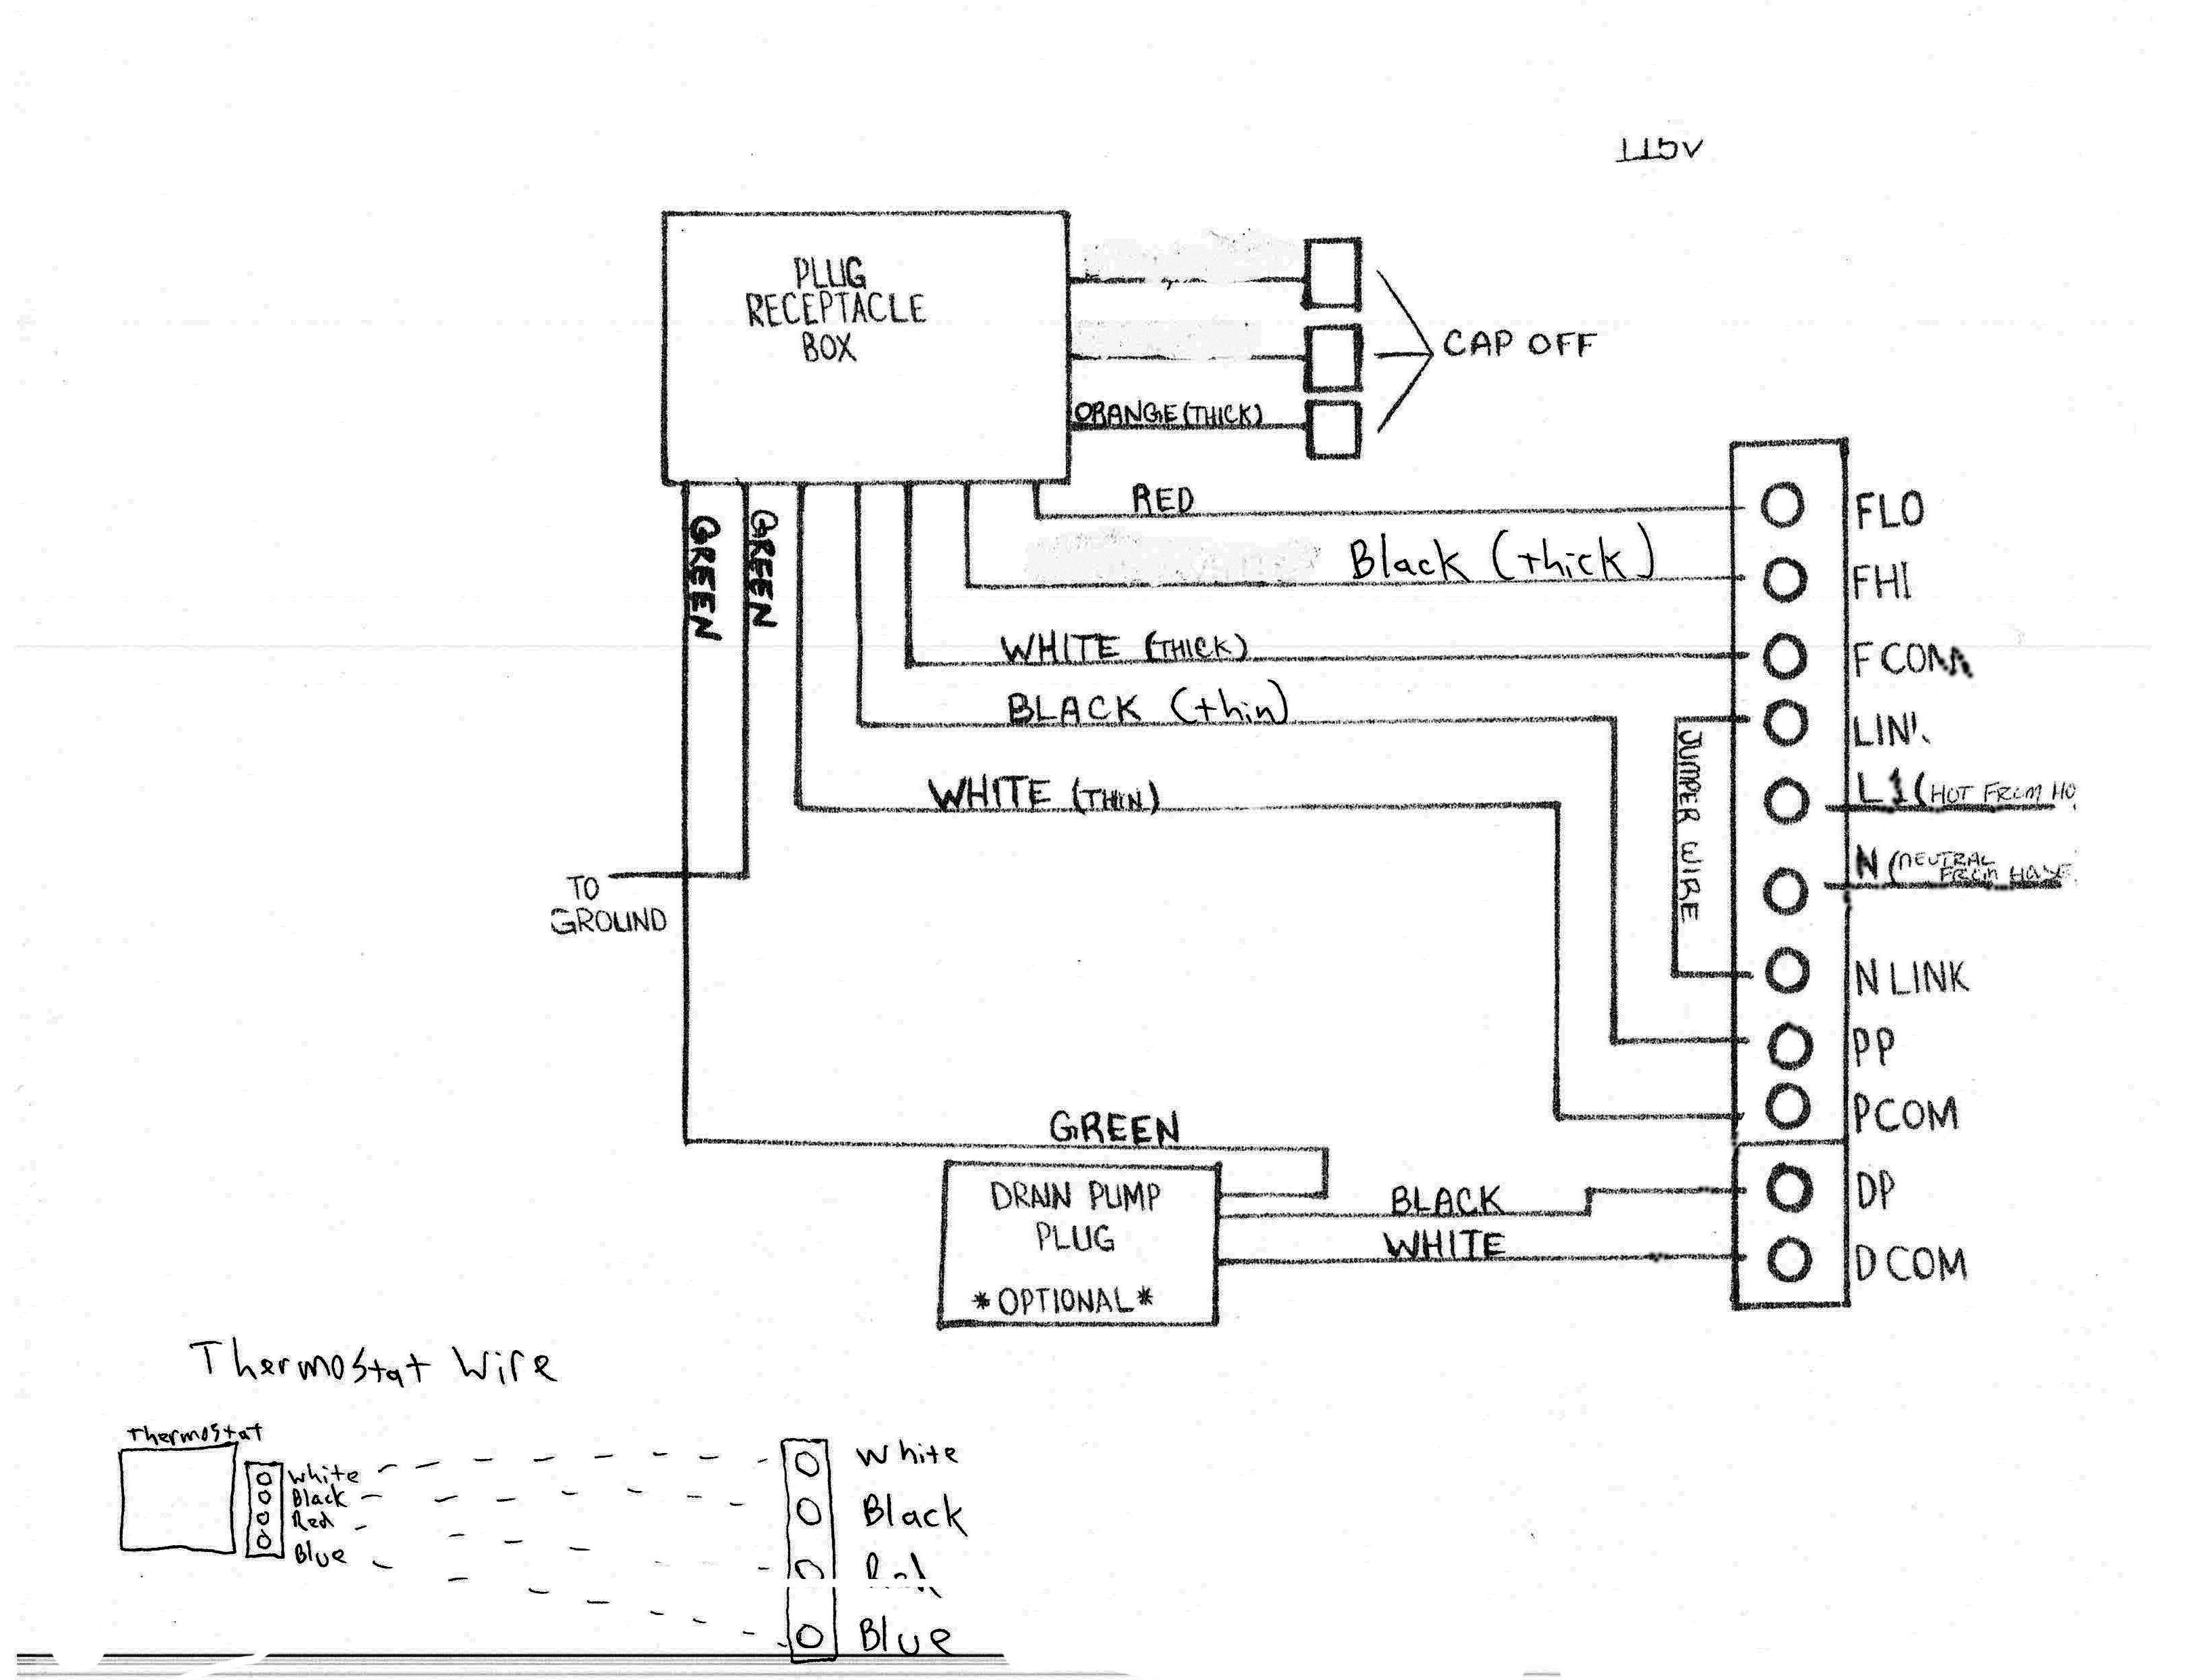 Generous evaporative cooler switch wiring diagram images